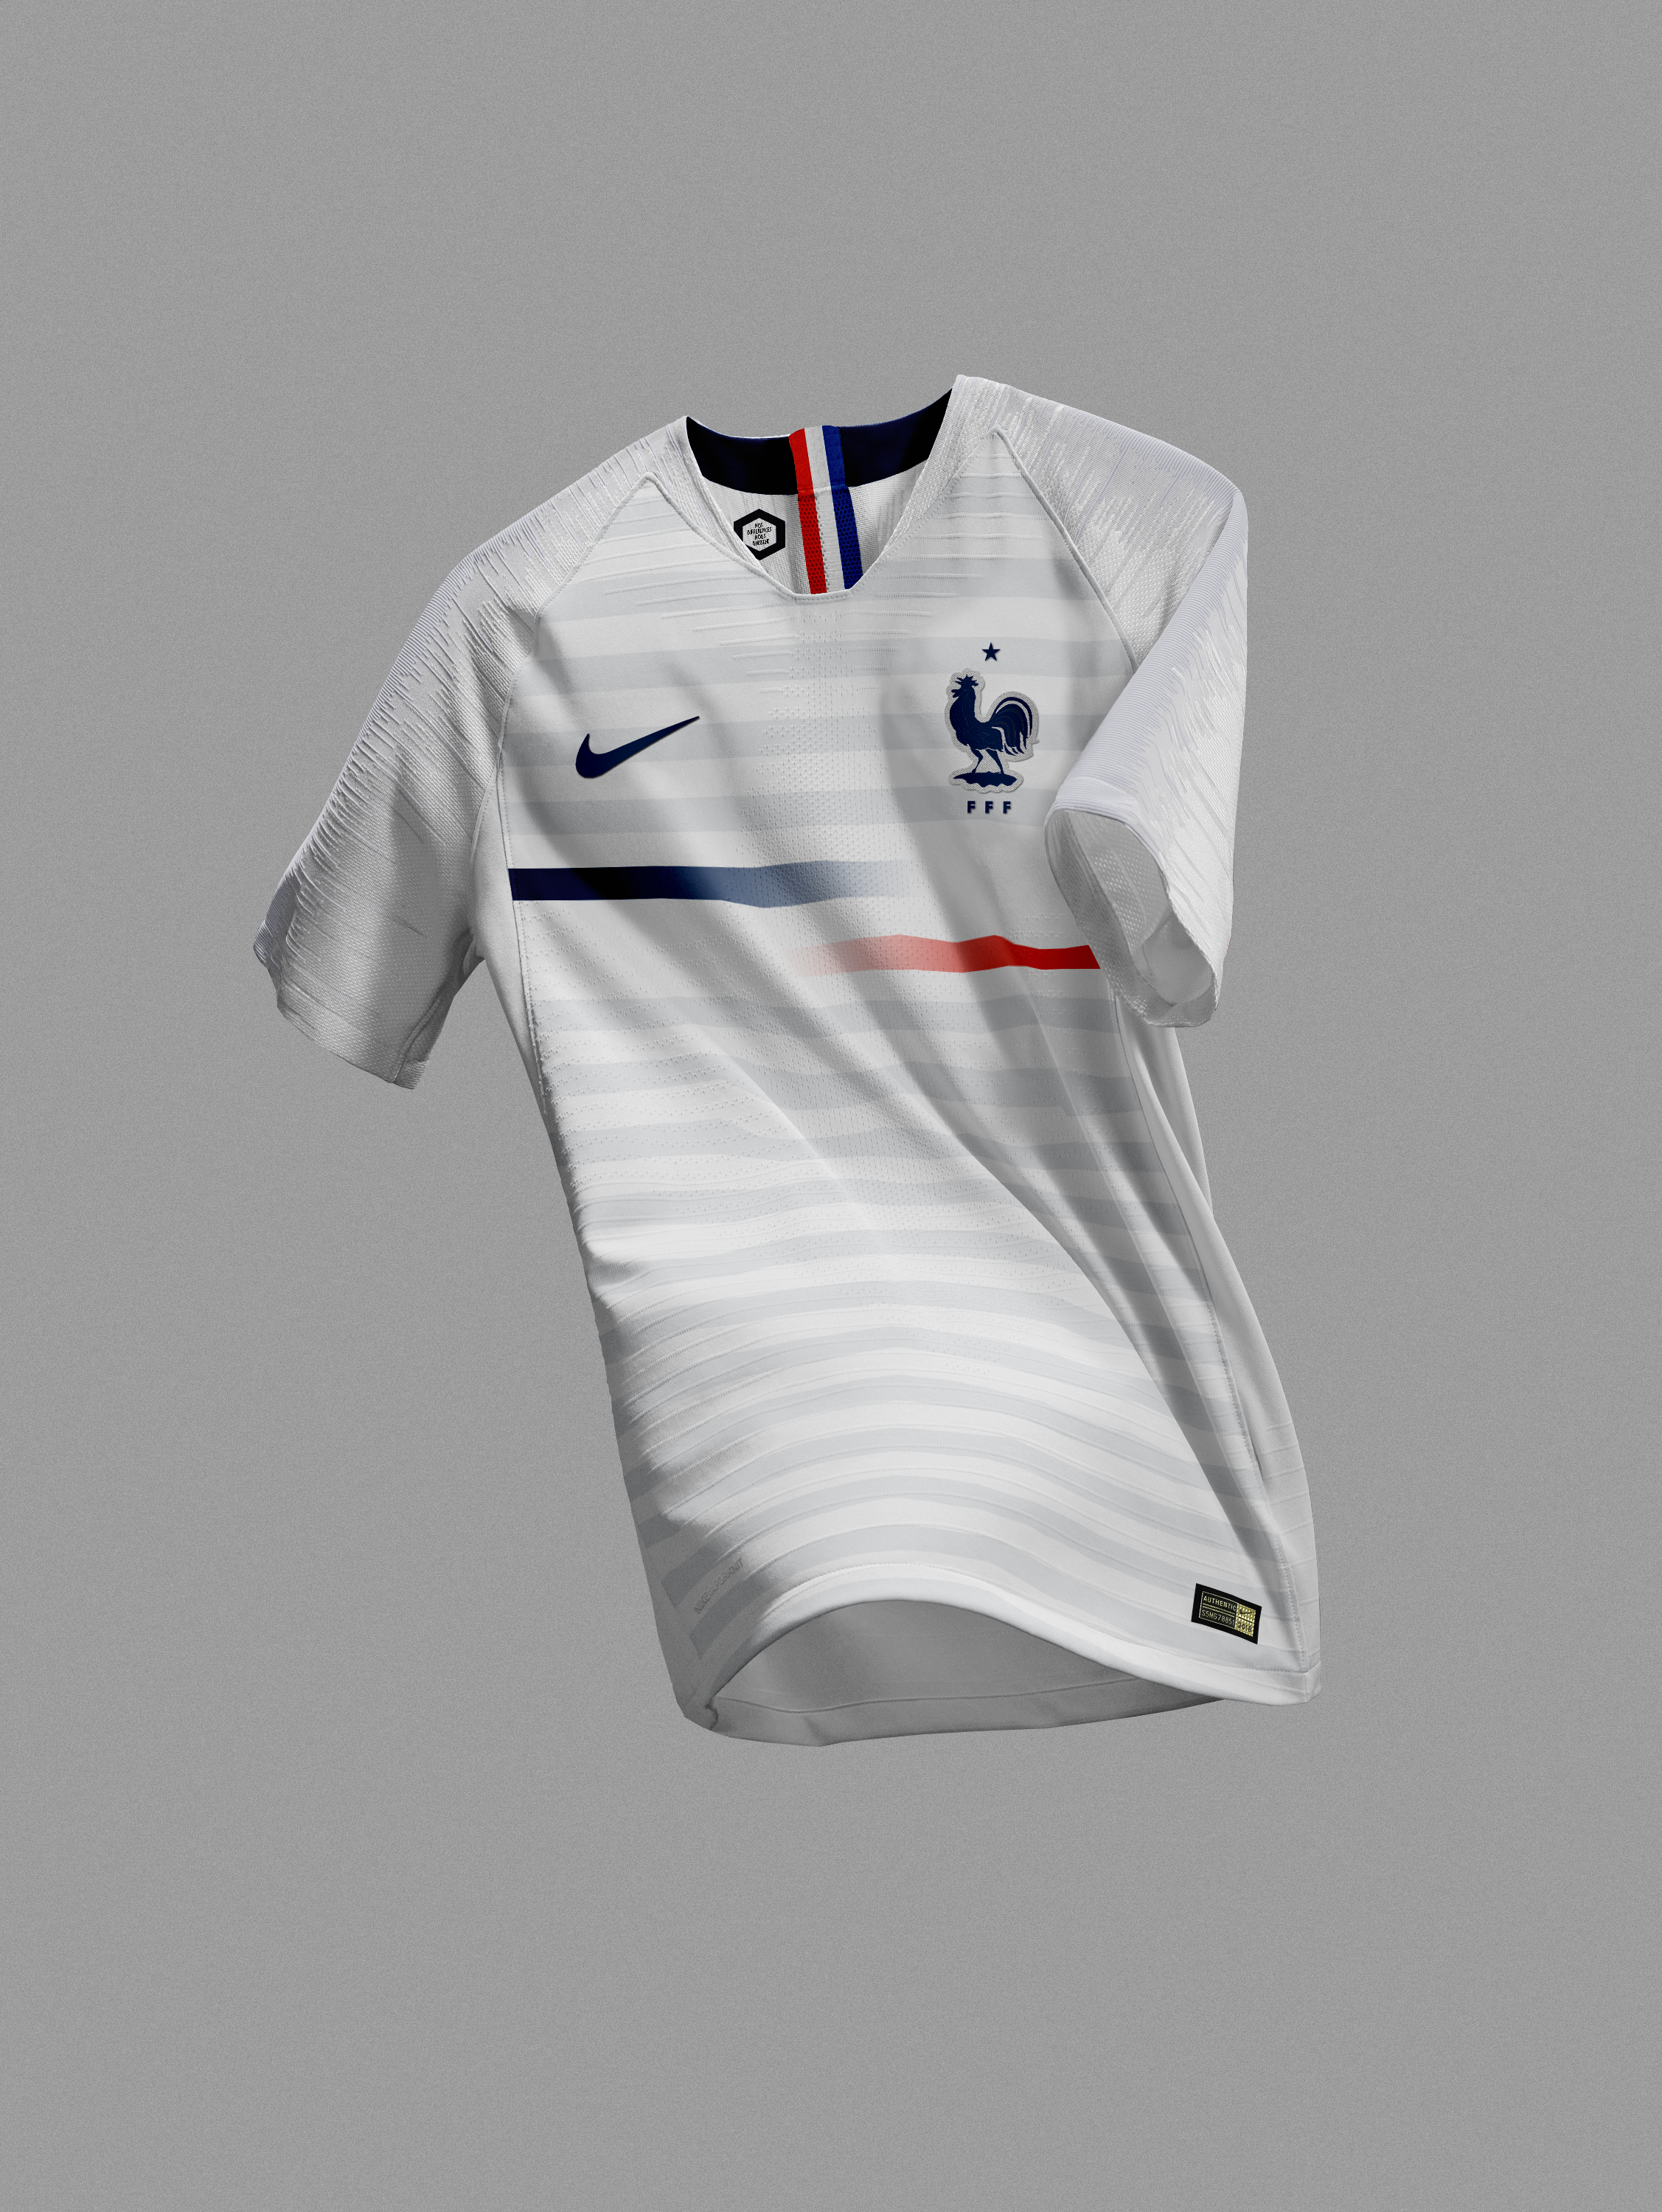 check out dbf2a 3c15a France Away Concept Kit